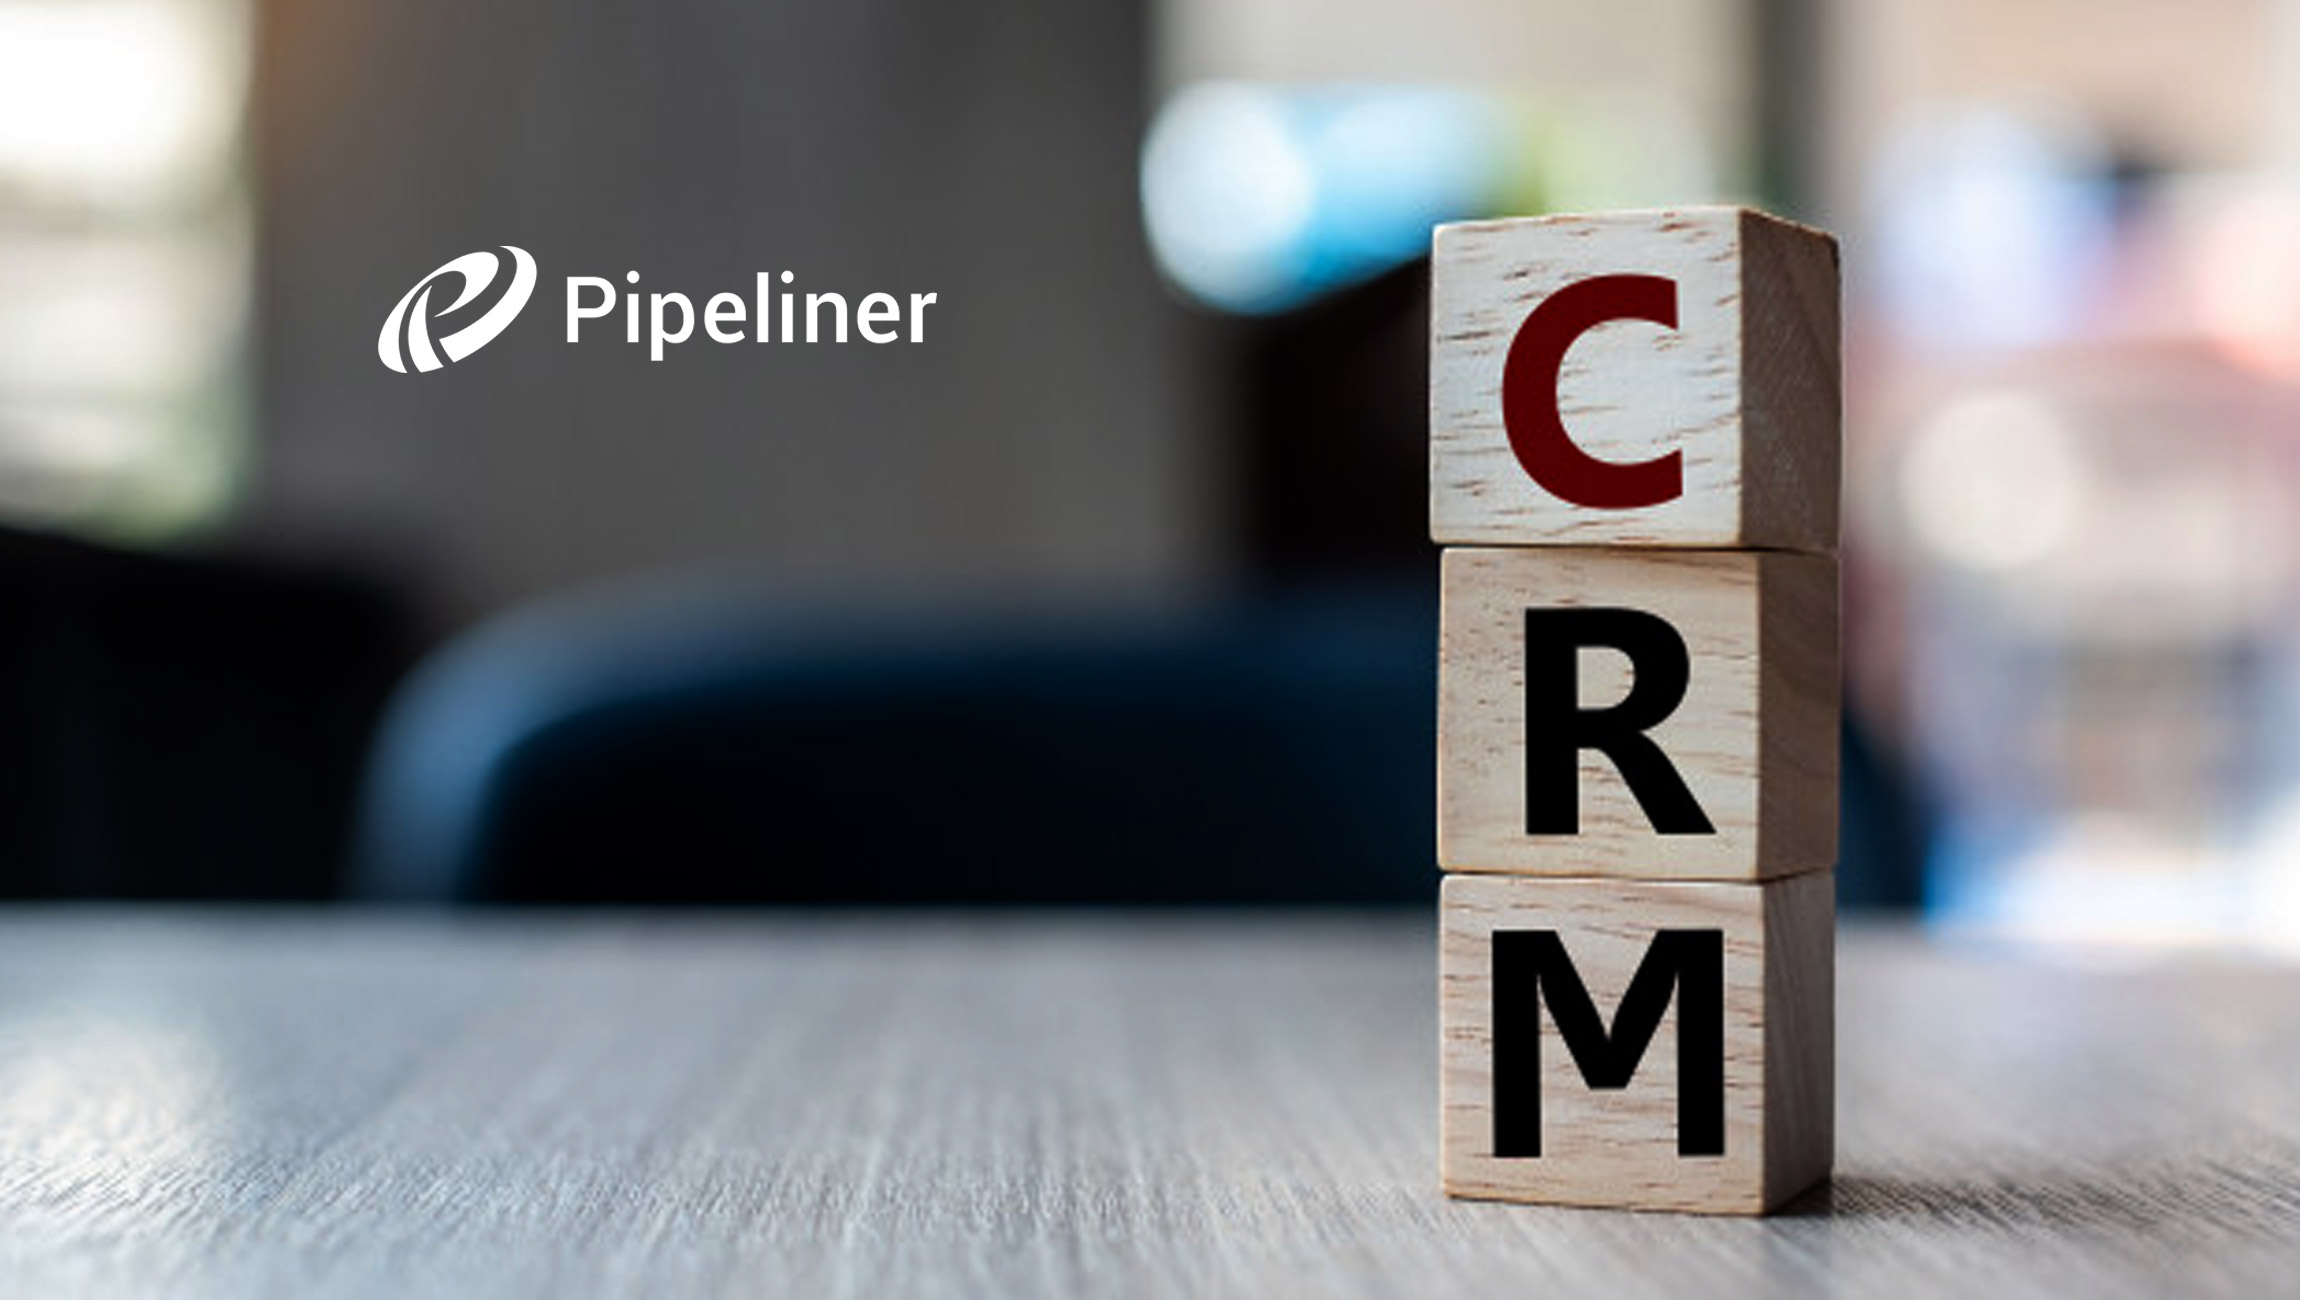 Pipeliner CRM Recognized as a Top Leader on G2's 2019 Winter Update for Best CRM Software